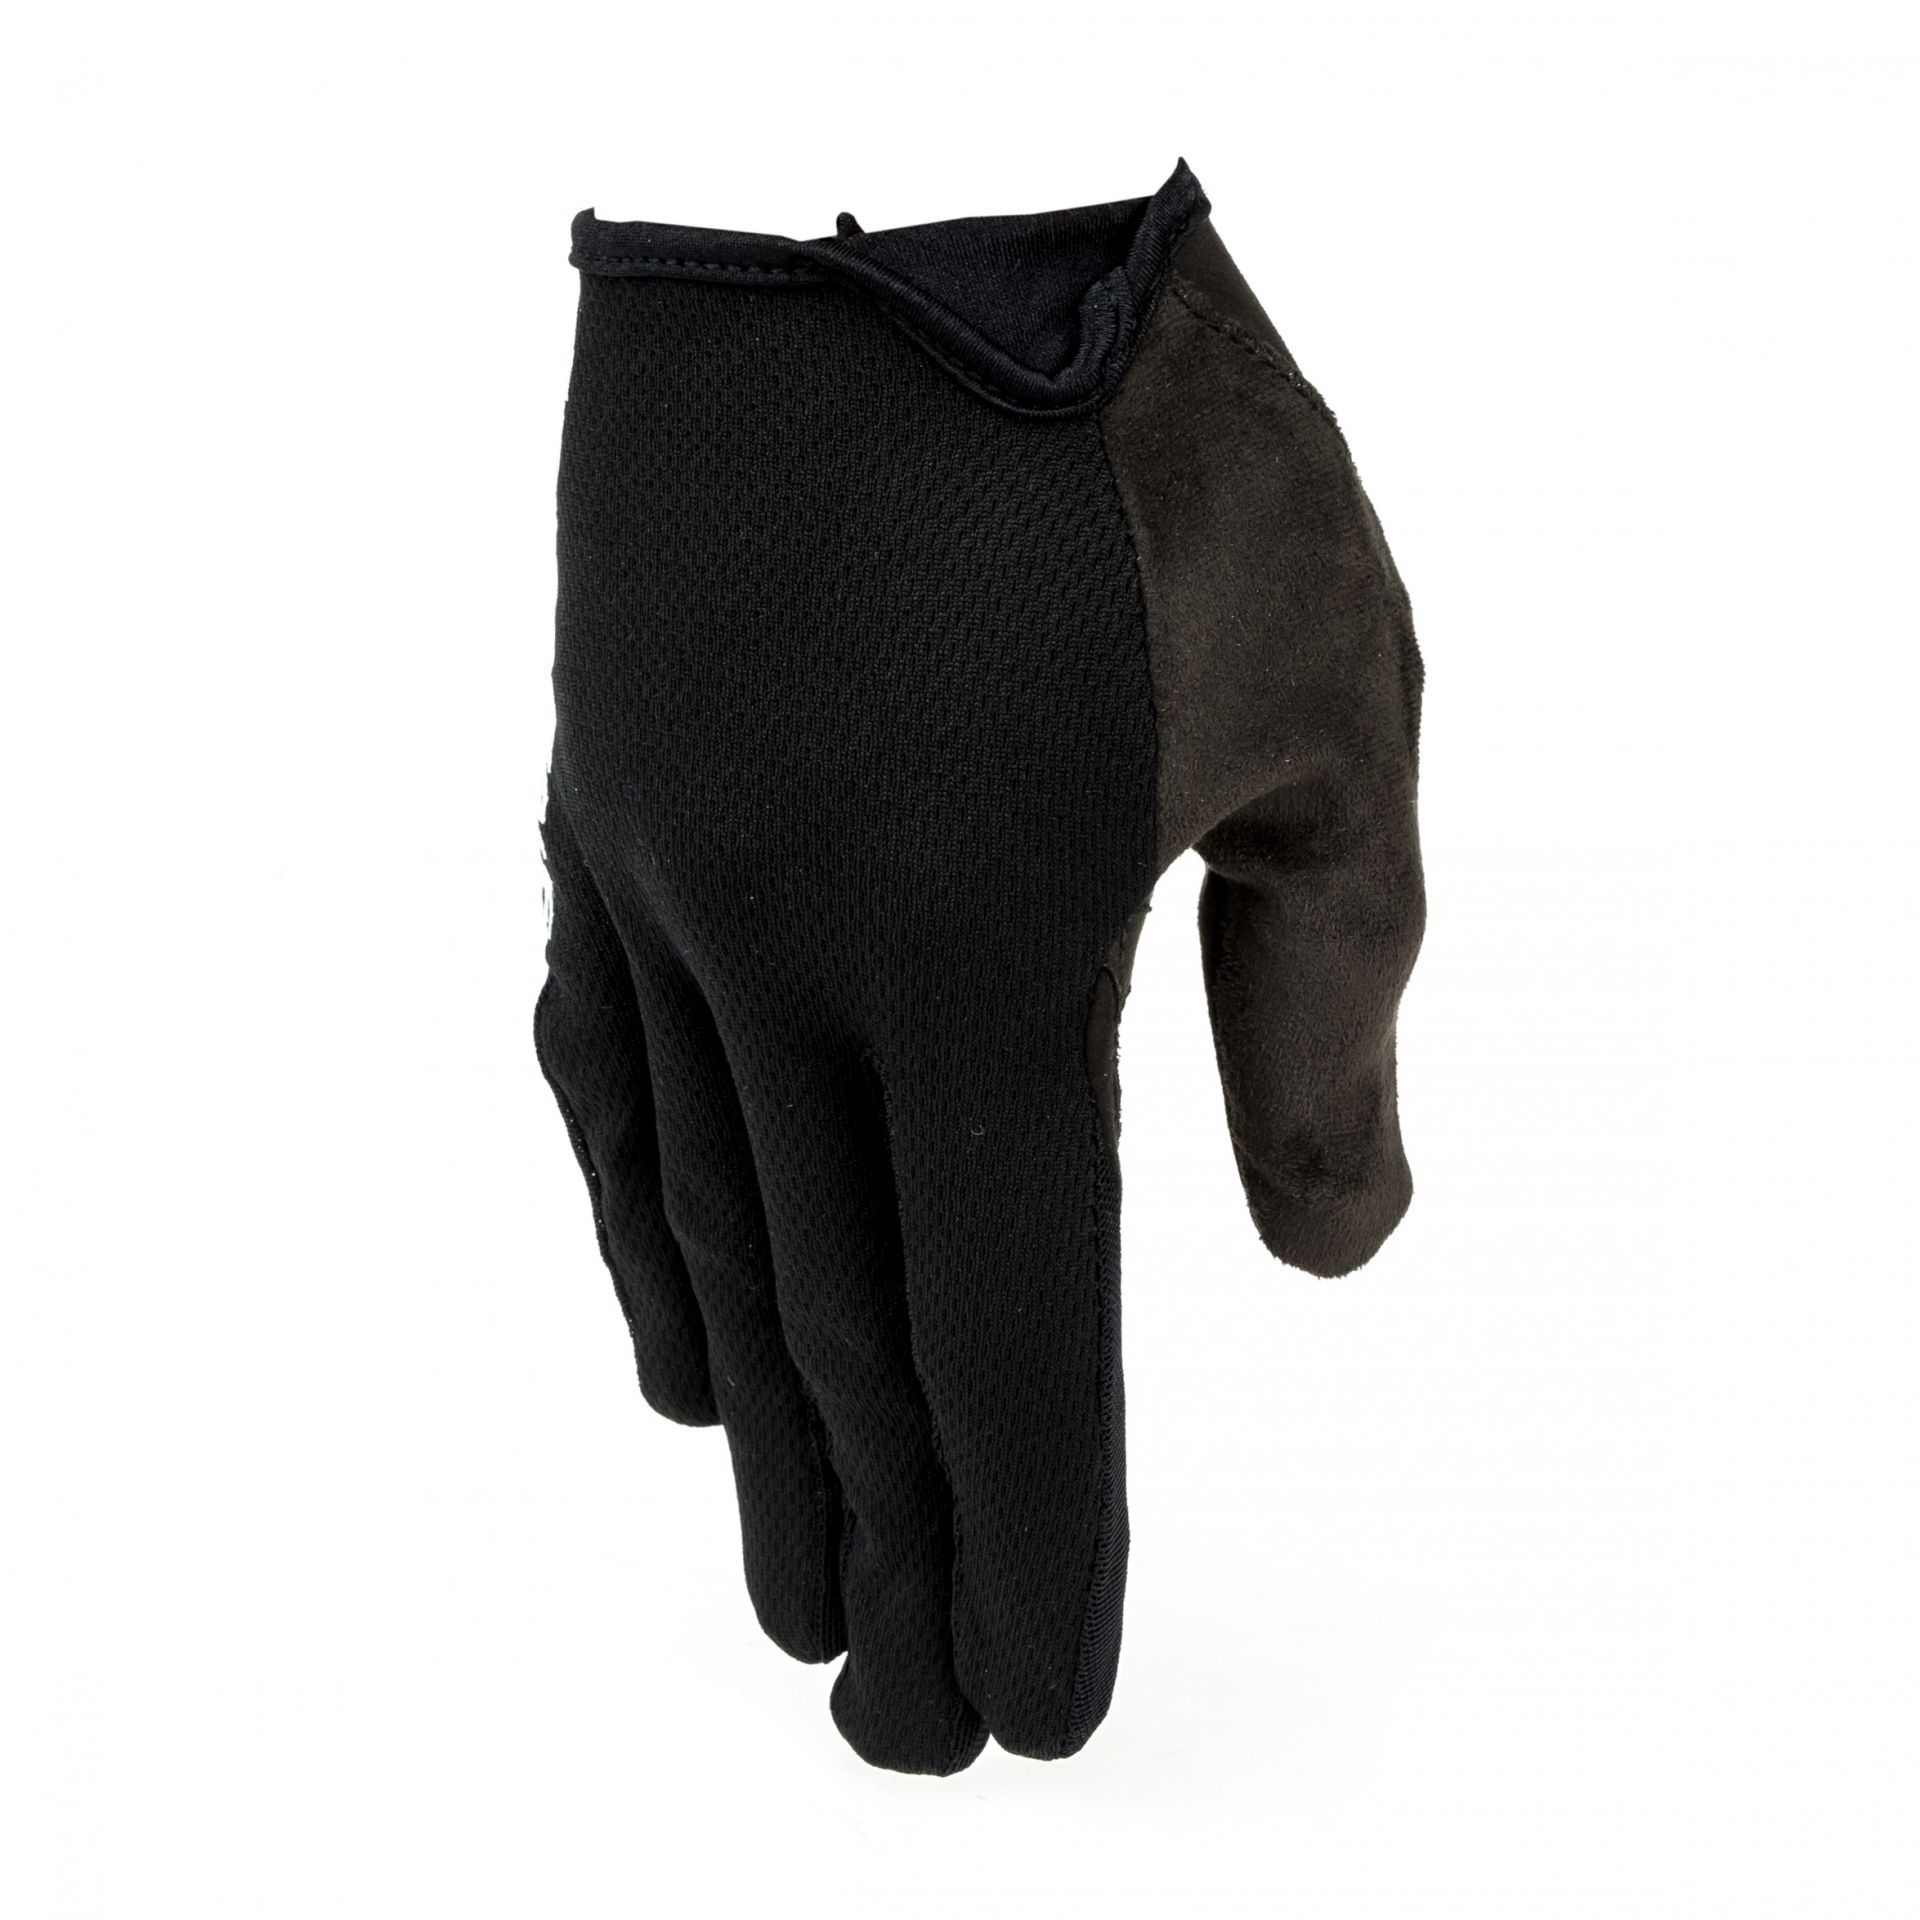 Gants longs Cannondale CFR Trail by Sugoi Noir - XL